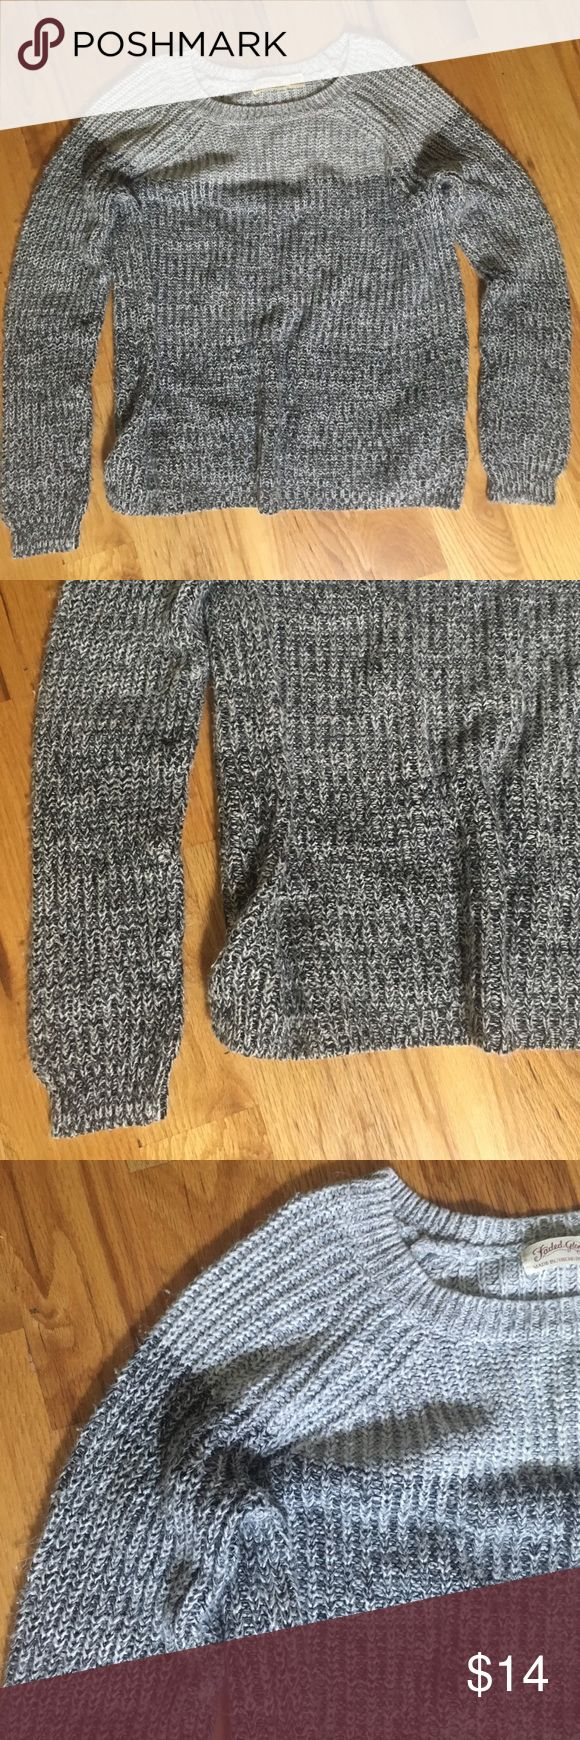 Super cozy ombré sweater Great ombré sweater!! Sooo soft!! It has no flaws. And is in new condition! It is a girls size Xlarge. Fits more like a women's small thoigh! 20% off bundles and excepting all reasonable offers. Brand is NOT Patagonia Patagonia Sweaters